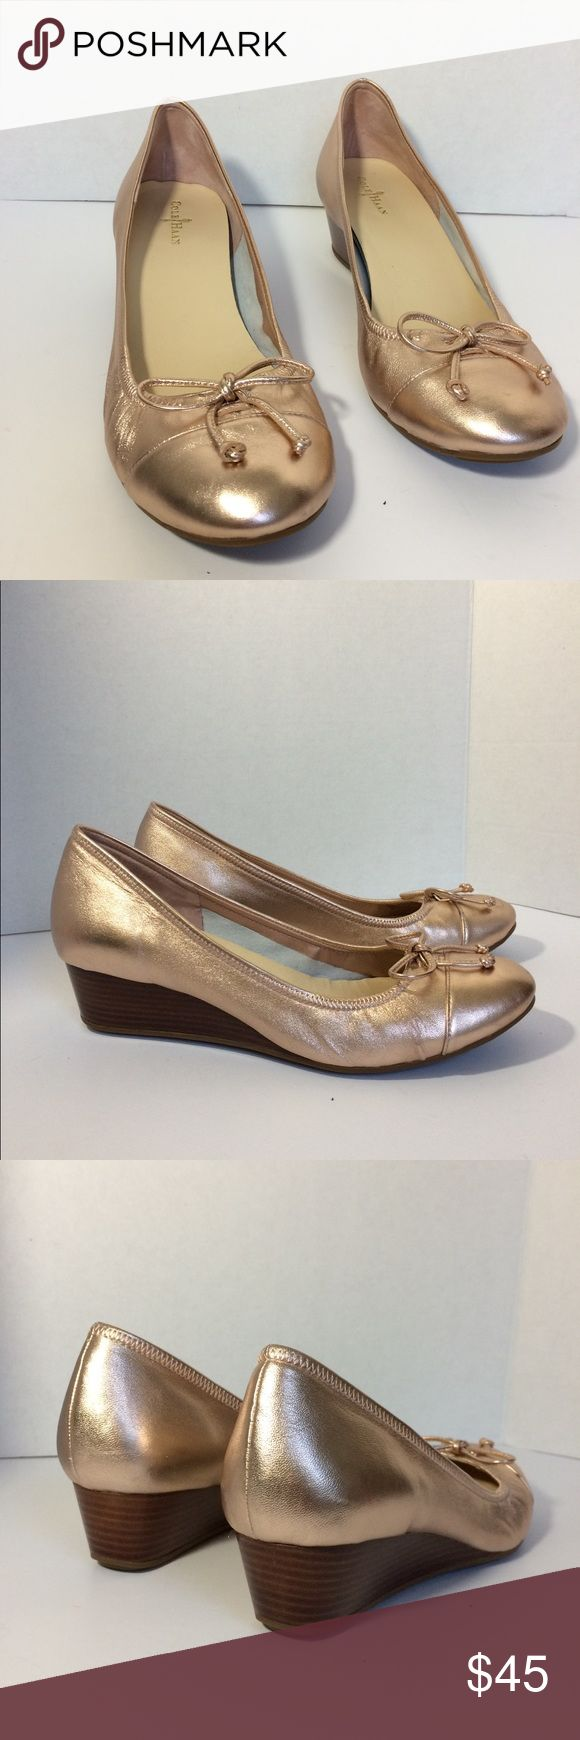 Cole Haan Wedges Style: Air Tali. Color: Rose Gold. Size: 9B. Capped Toe with Bow Accent. Material: Leather. Cushioned with Nike Air Technology. Gently Used. Cole Haan Shoes Wedges